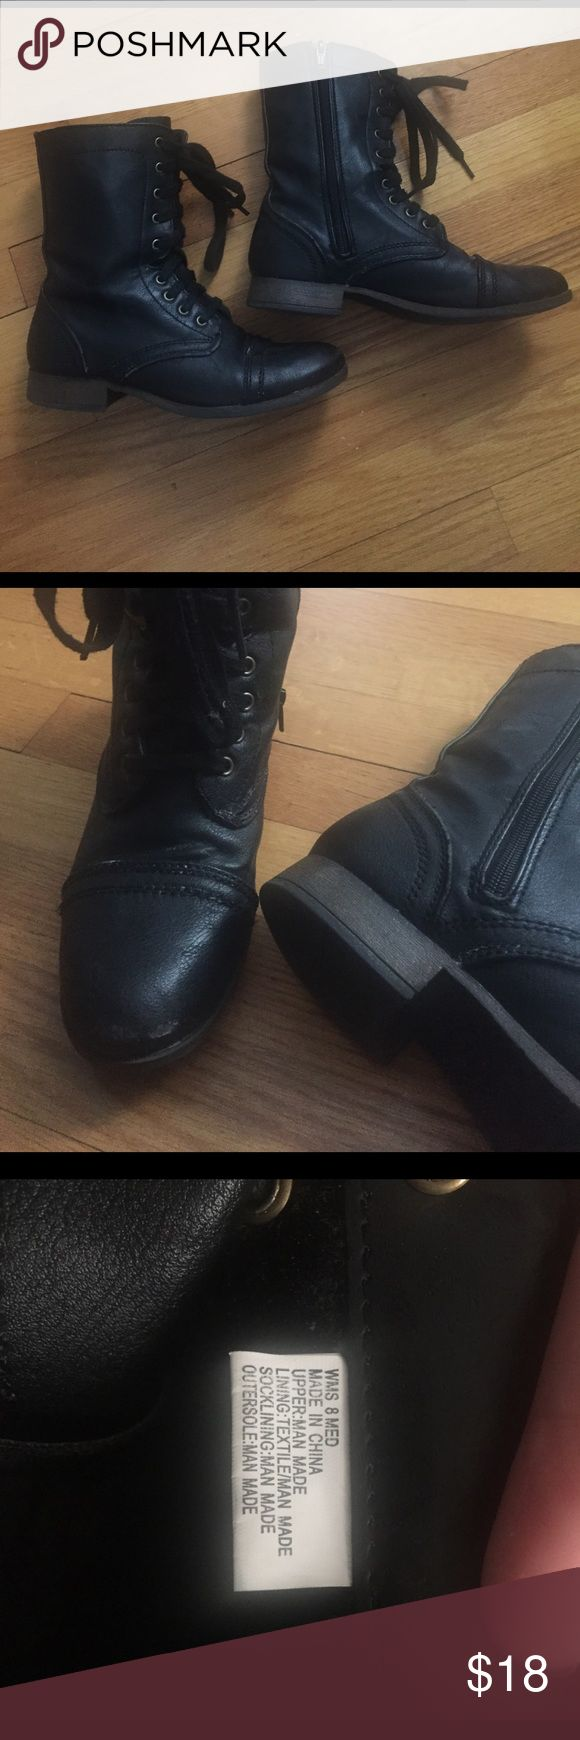 """Black Candies Boots Black Candies Boots. Regular wear, some scuff marks but blends in with the """"combat boot"""" style. Size 8. No trades please 🤗 Candie's Shoes Combat & Moto Boots"""